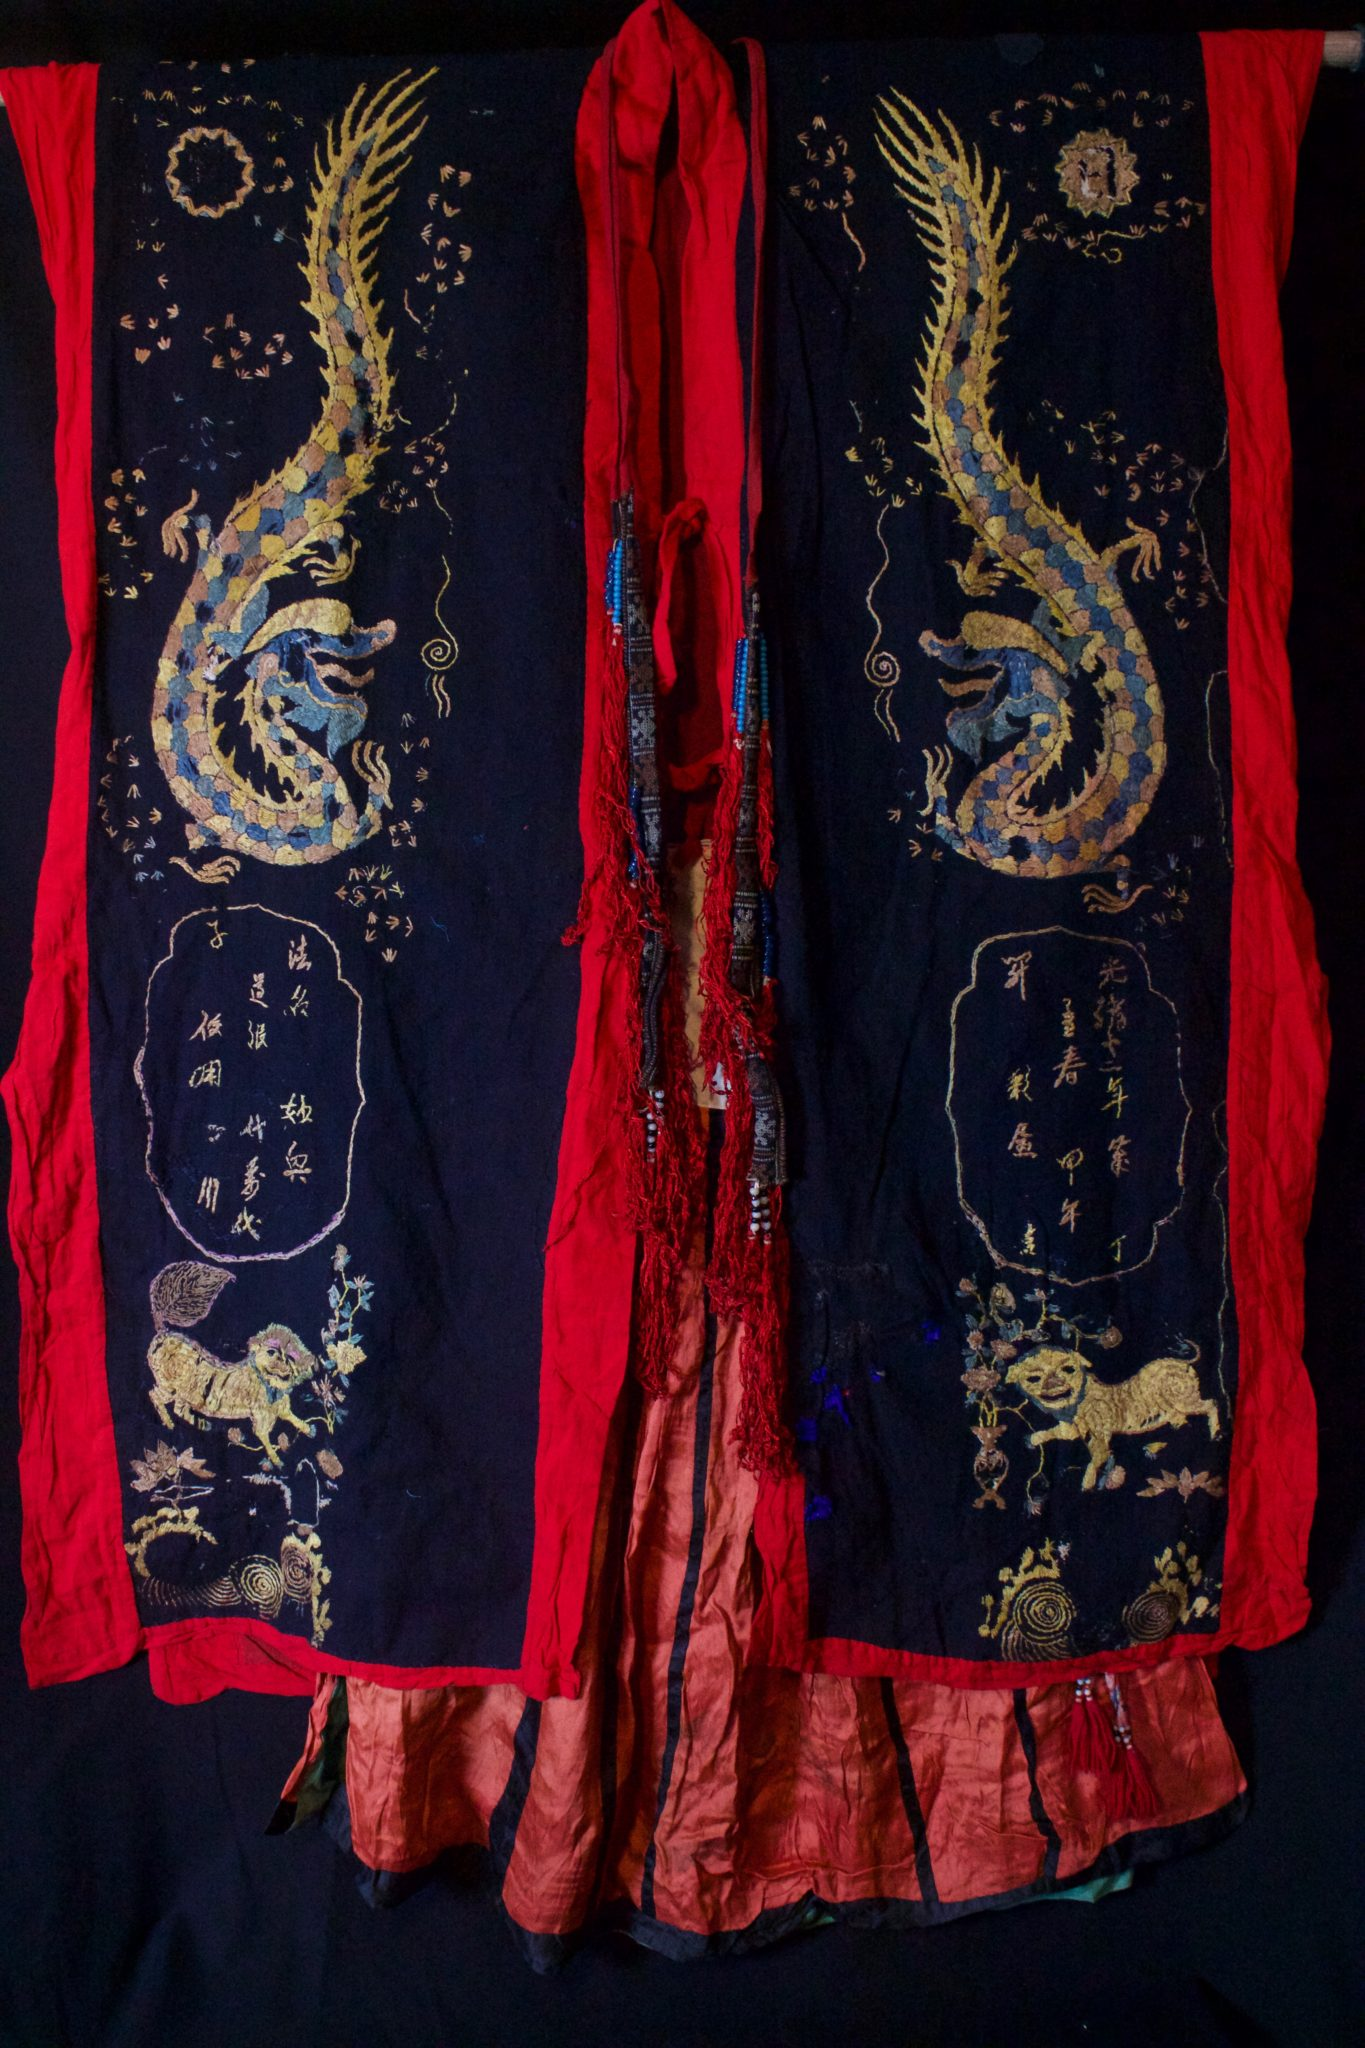 """Dragon Robe (front), Shaman Priest's Costume, complete outfit; Robe, Skirt, Belt, ( Scarf see next image), Vietnam, Tao people, Mid 20th c, Cotton, silk embroidery. Worn by shaman/priests for all ceremonies. The motif typically includes all the deities of heaven to clothe the shaman in the universe for protection. Not a vain adornment, it is a reminder of man's place in the hierarchical order. Long ago shamans were women and men the providers. Not being encumbered by childbirth and child rearing, men replaced women as shaman but retained the same sacred costume. This type of headpiece/scarf is worn by postulant or newly ordained shaman. High level priests will wear a hat made of human hair. Dimensions (49"""" x 42"""" robe); (35"""" x 26"""" skirt); (106"""" x 3"""" belt); (118"""" x 9 ½"""" scarf), $3900 full costume"""